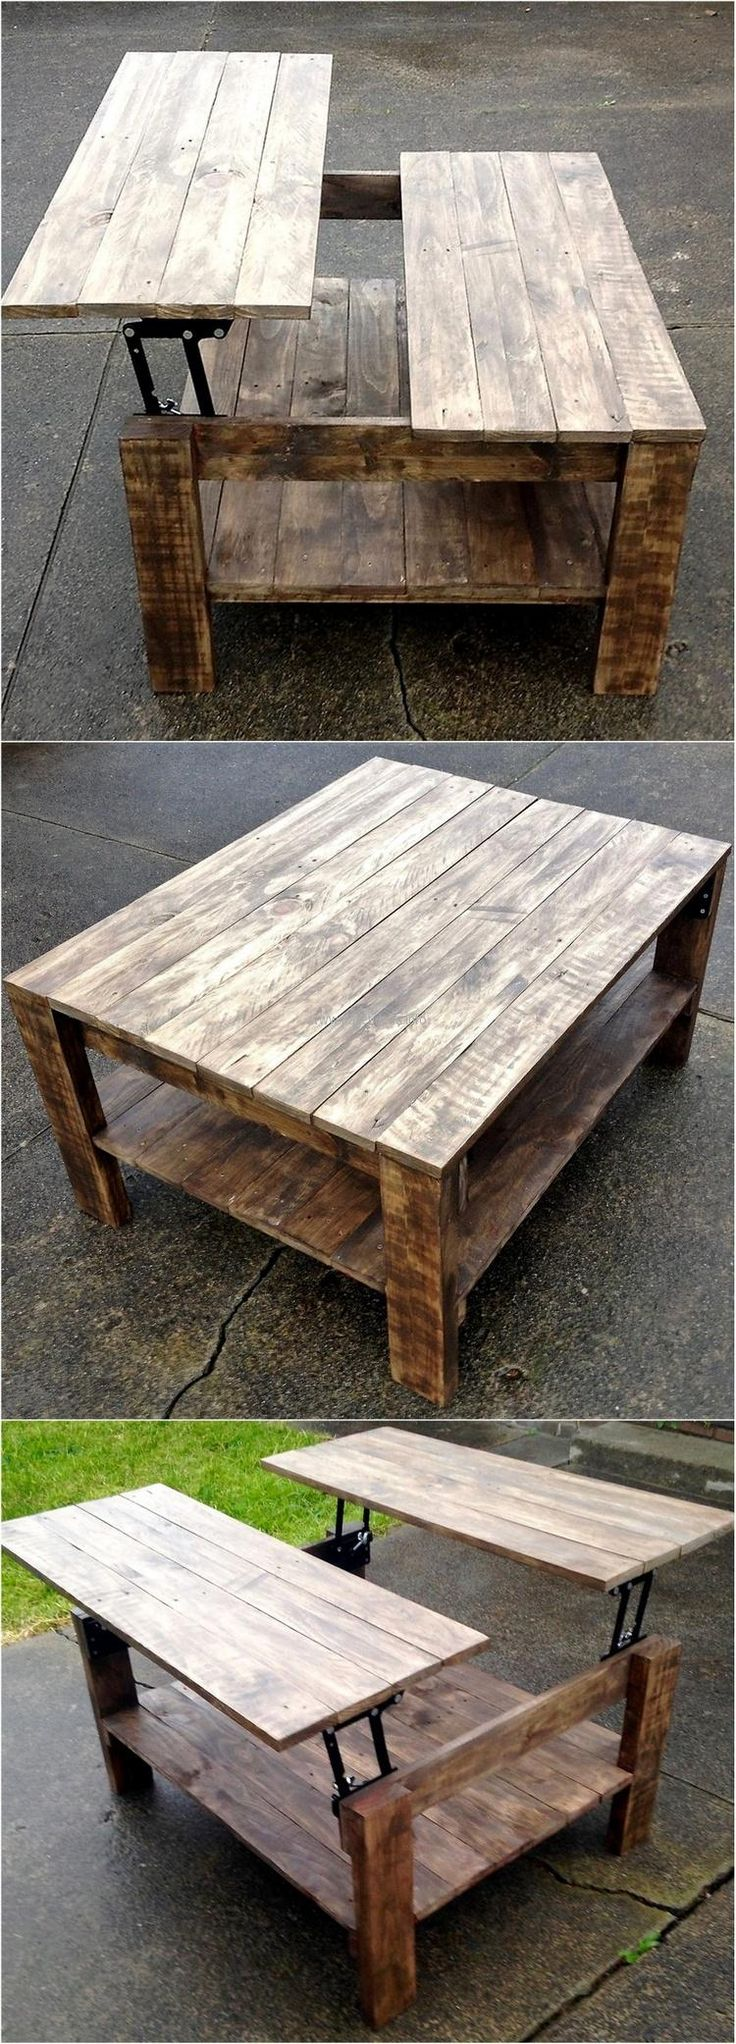 Garden Furniture From Wooden Pallets best 25+ pallet furniture ideas only on pinterest | wood pallet